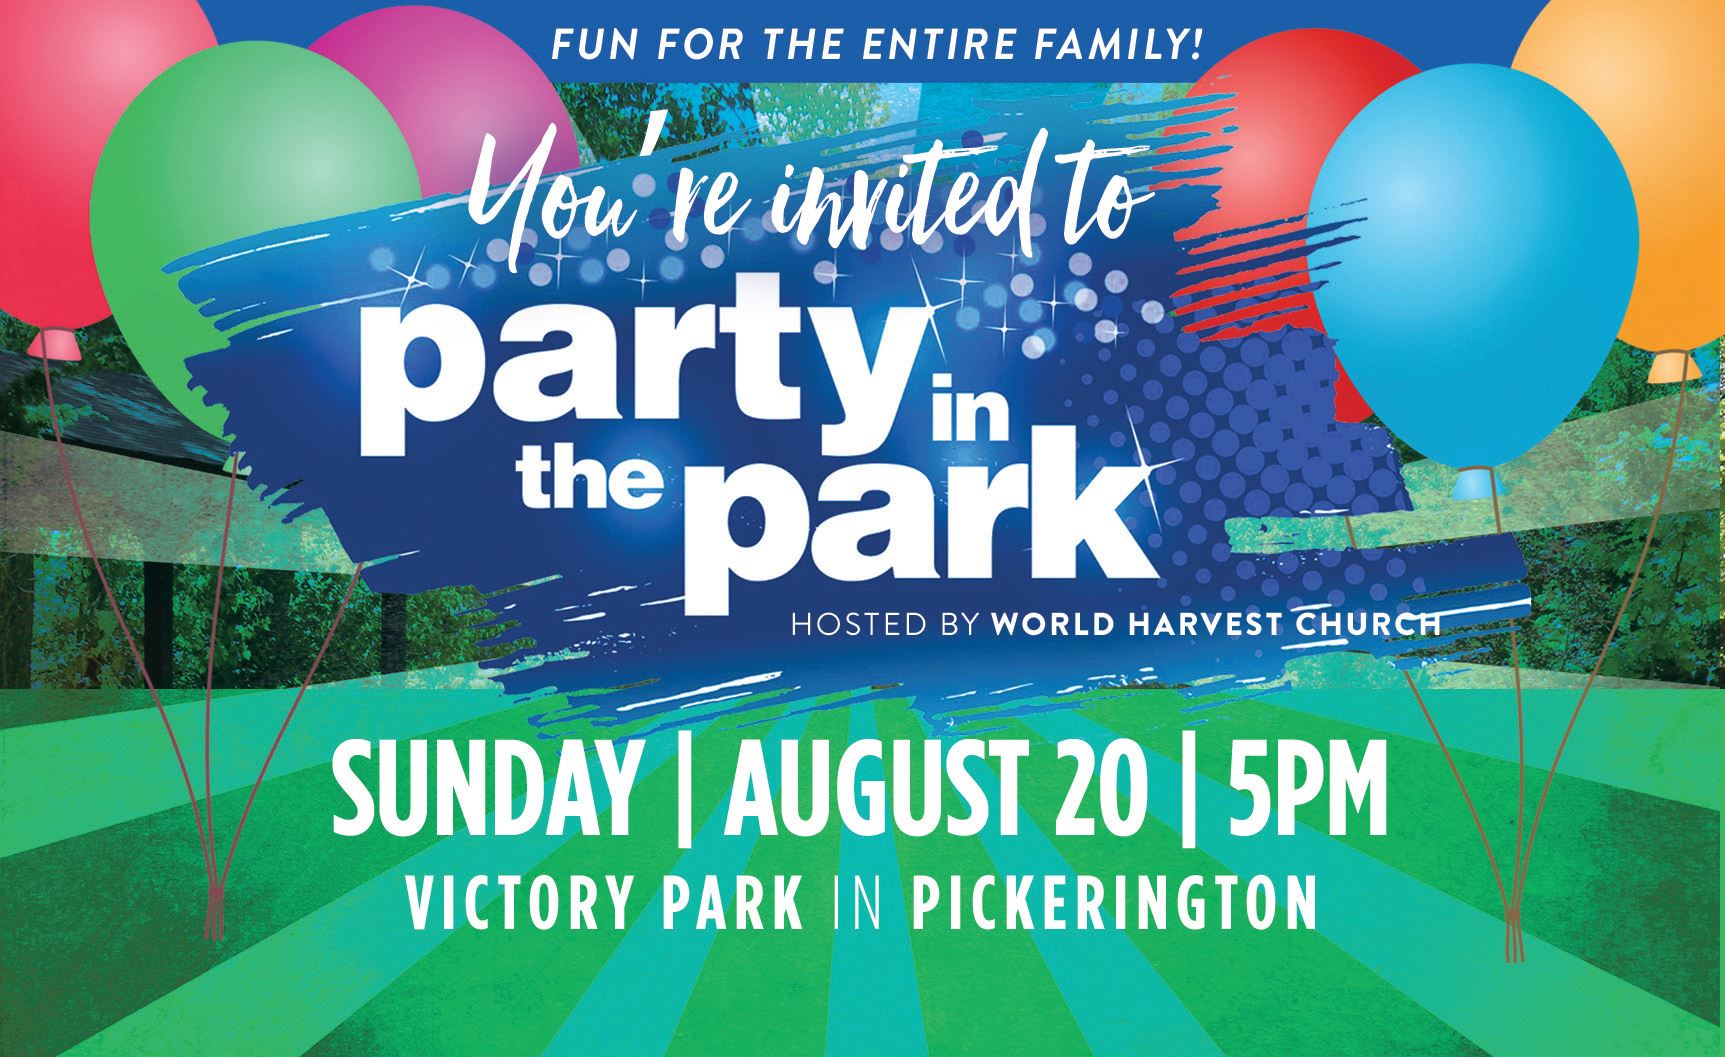 Party in the Park | Fun for the entire family | Hosted by World Harvest Church |Sunday, August 20, 5pm , Victory Park in Pickerington